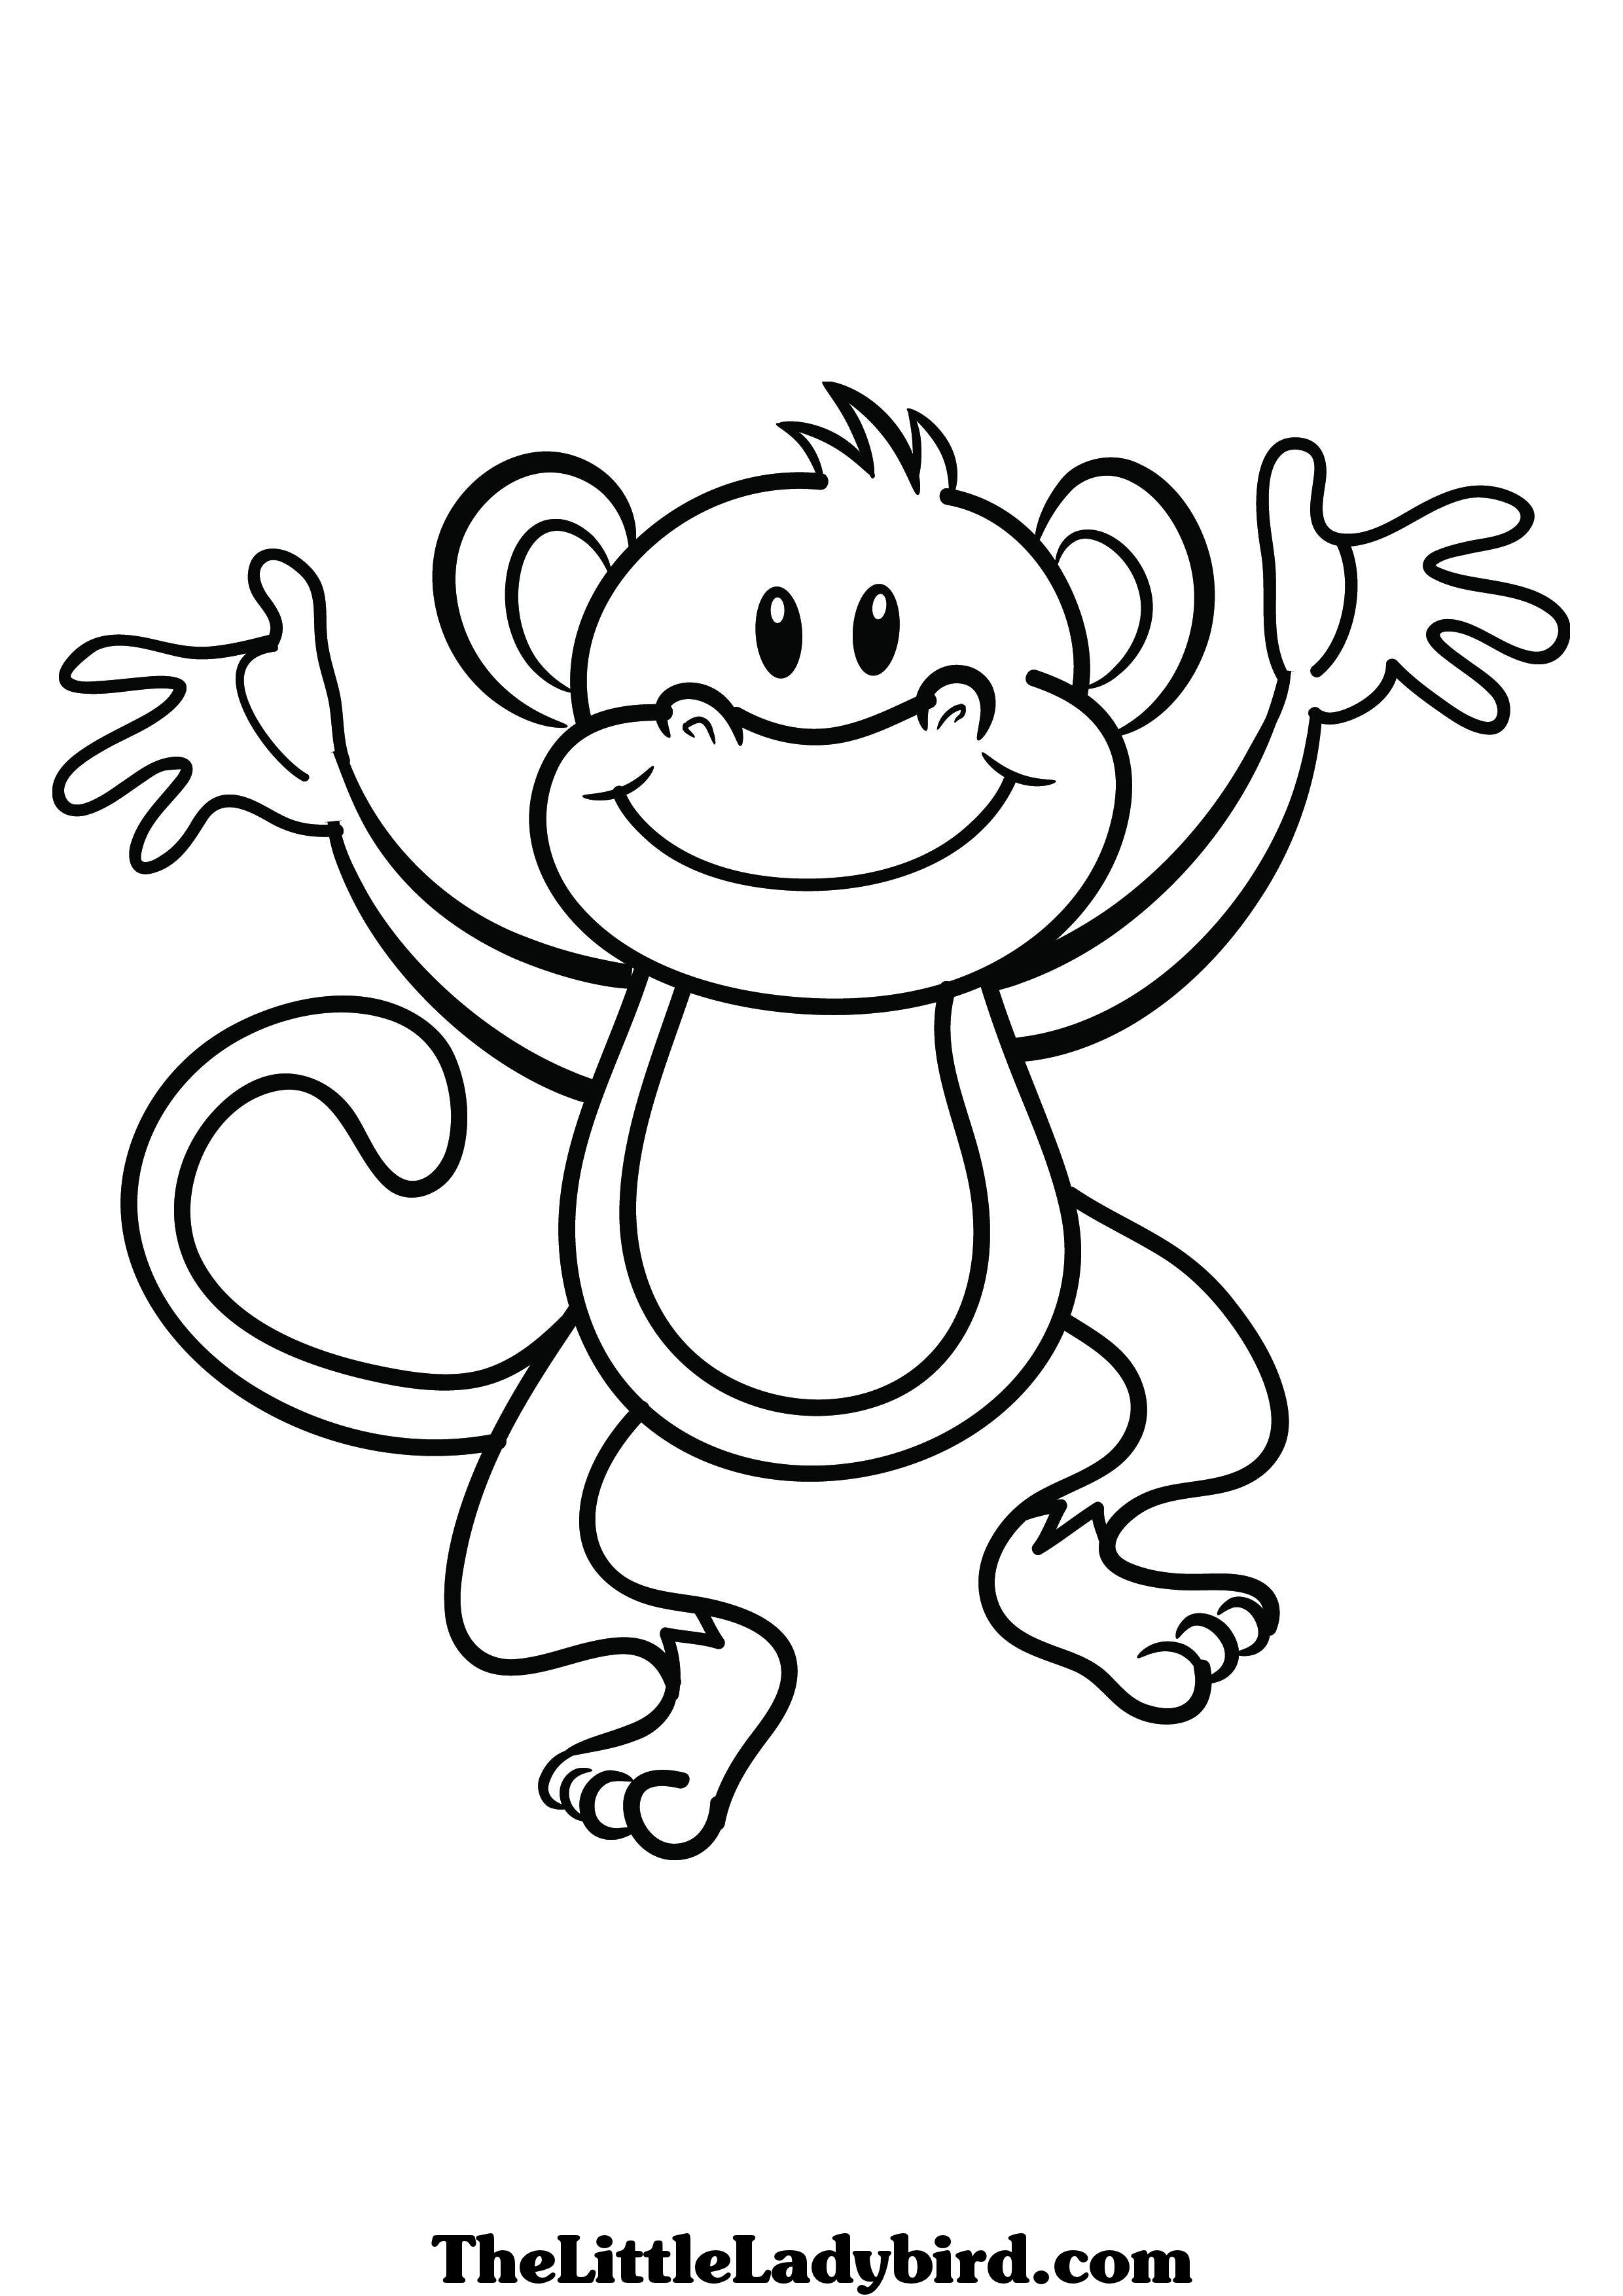 2480x3508 Monkey Coloring Pages For Girls Printable Coloring Pages for